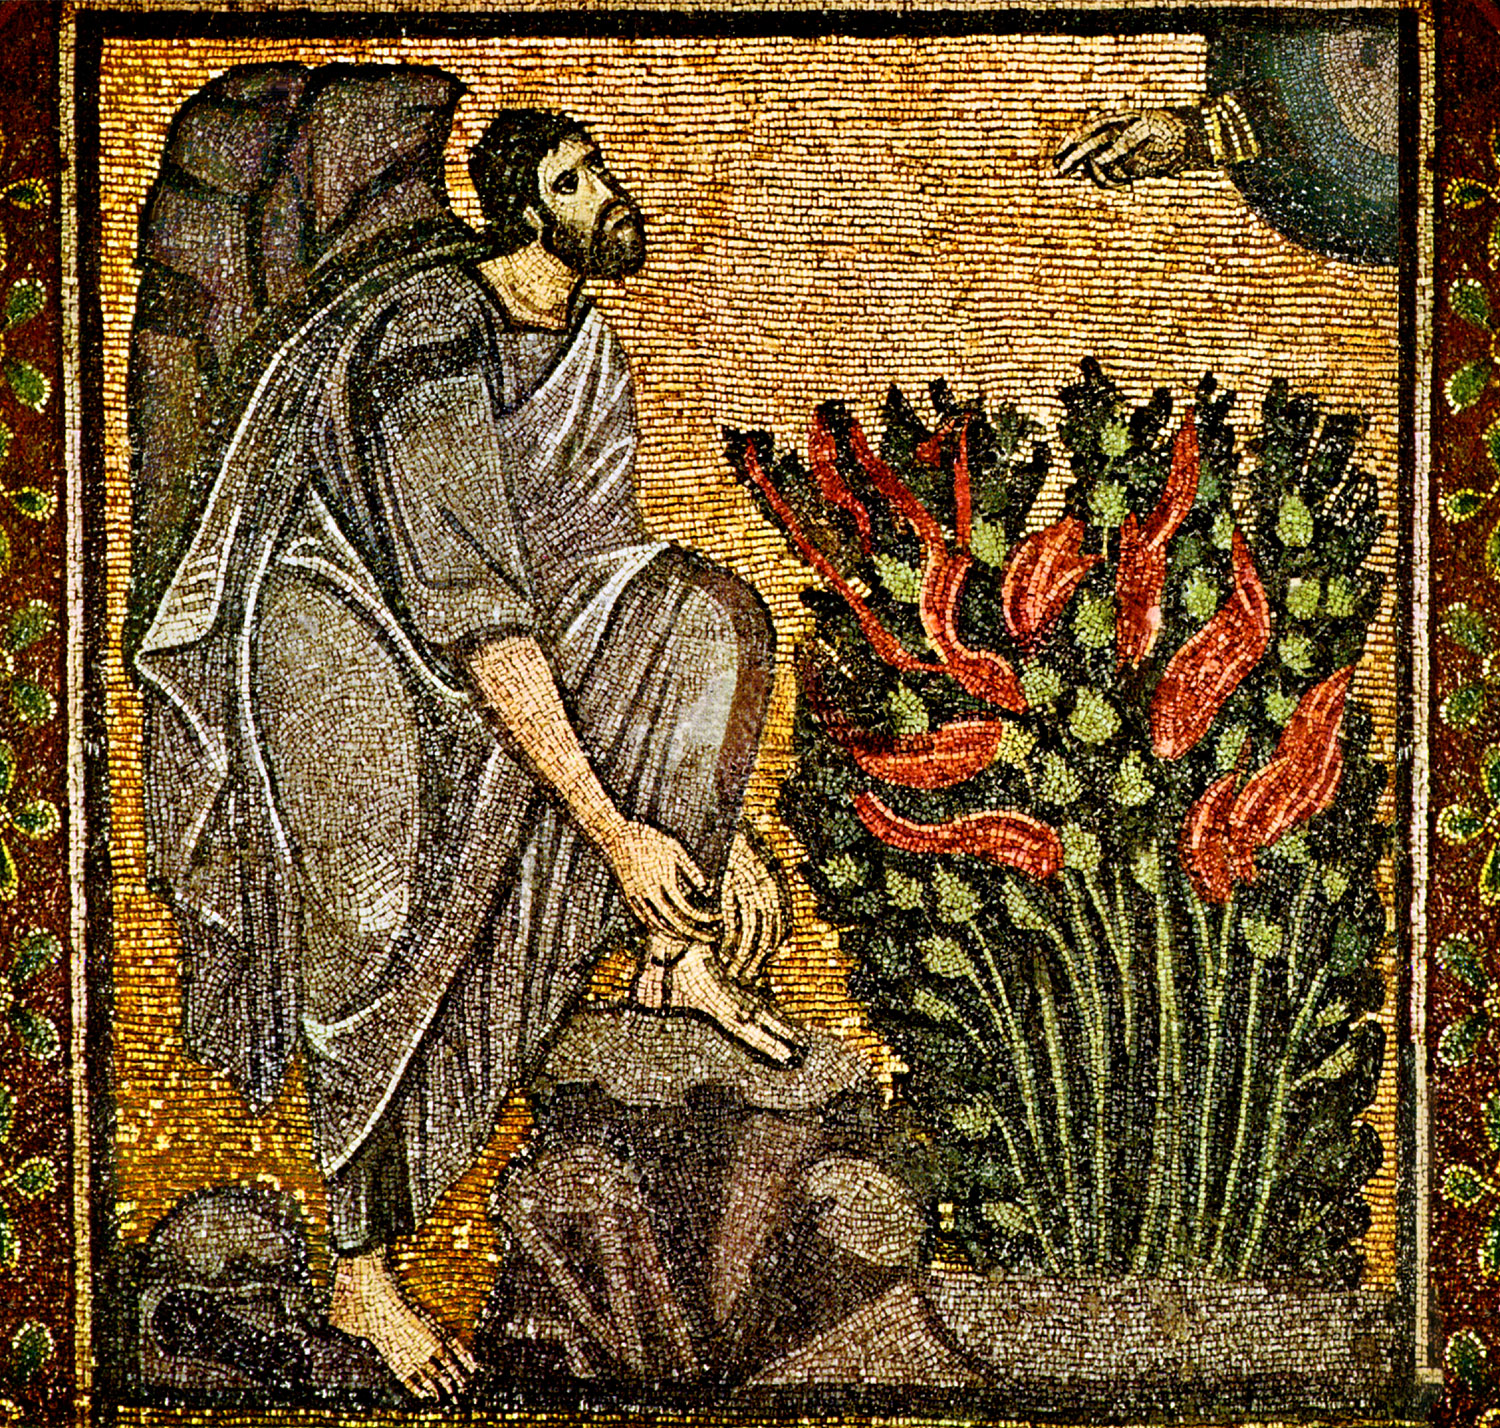 Moses_taking sandals off before Burning_Bush, Sinai mosaic